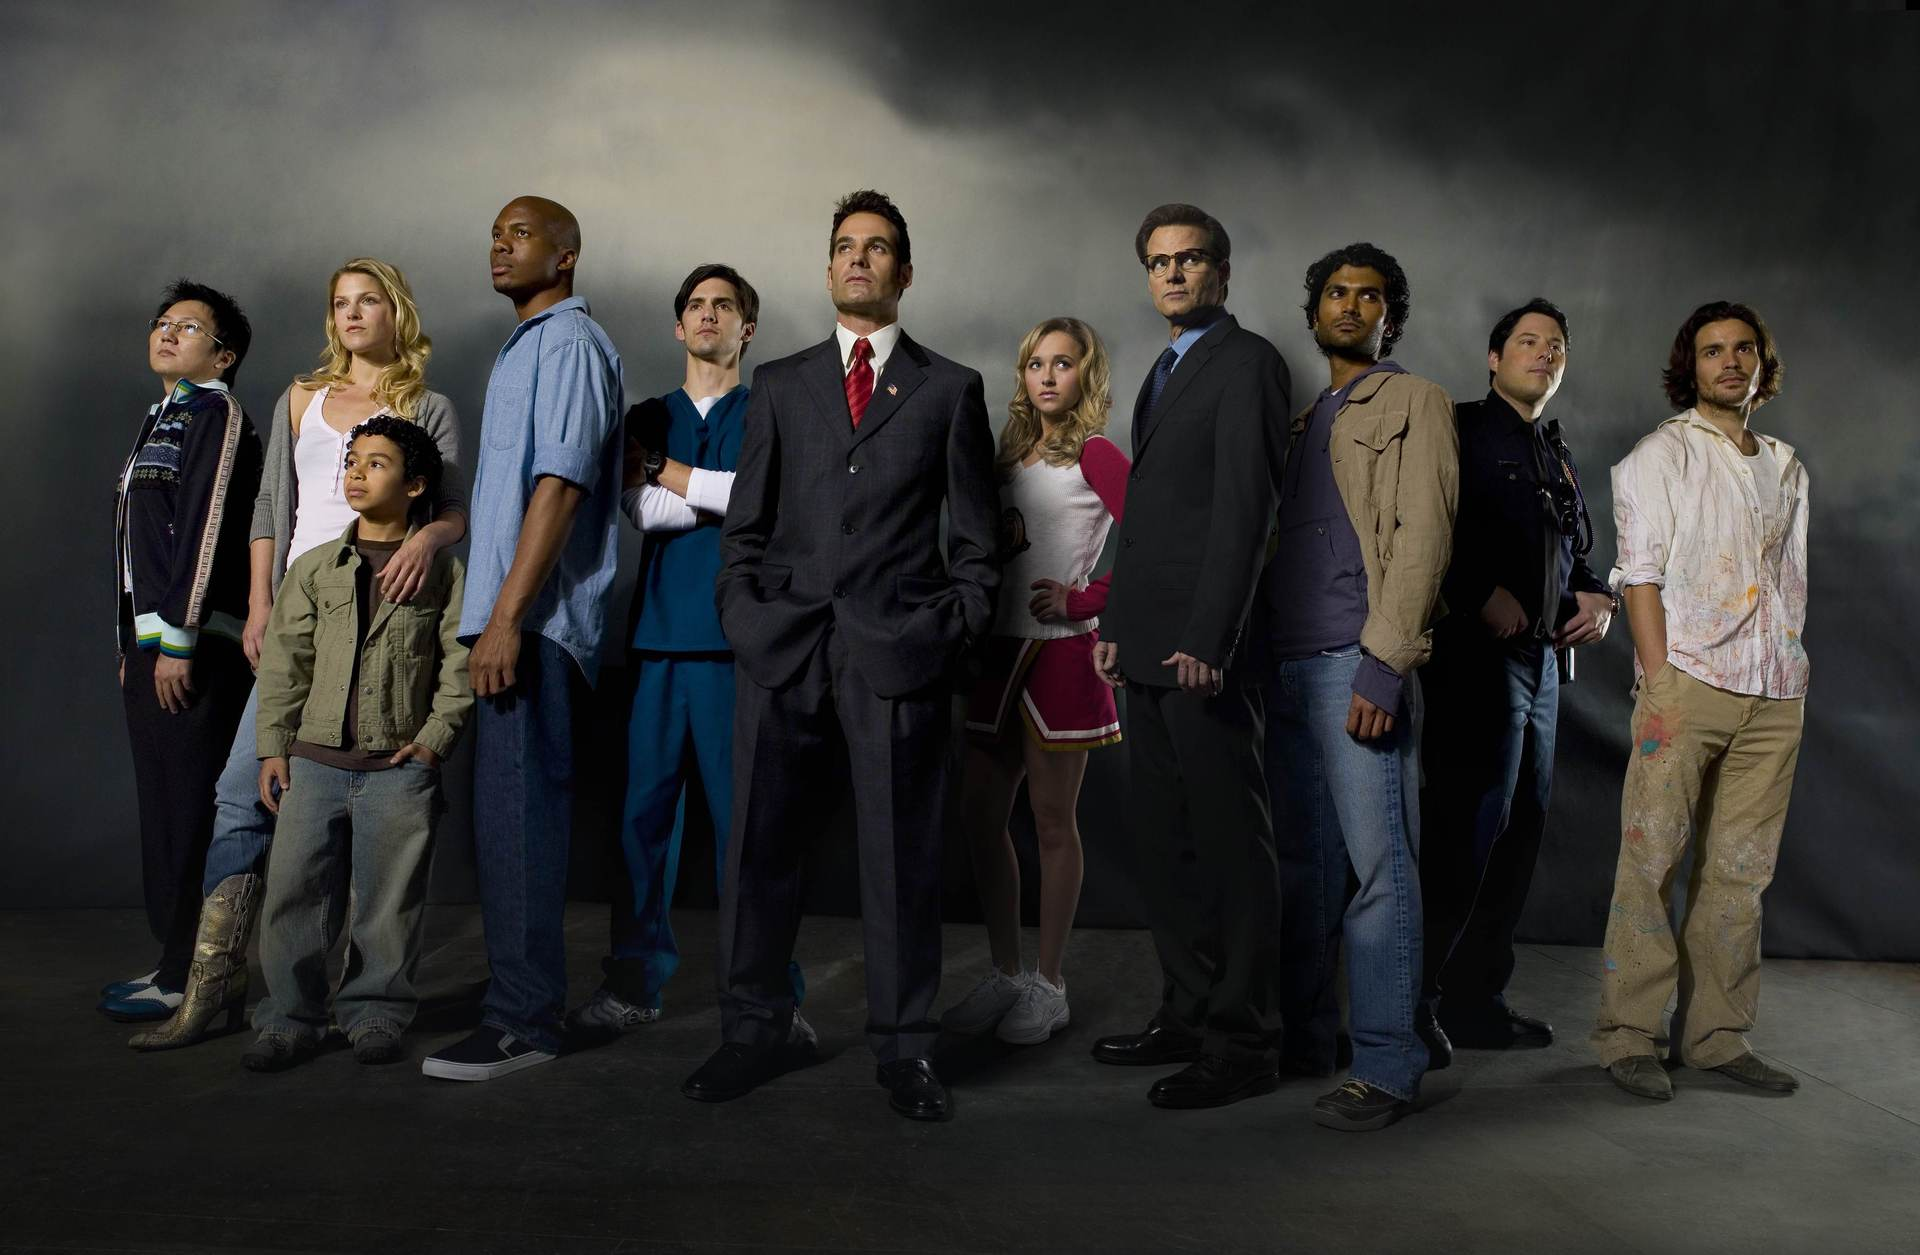 """""""Heroes"""" returns with """"Heroes Reborn"""" miniseries on NBC in 2015, but who will return from the original cast to fight the good fight?"""